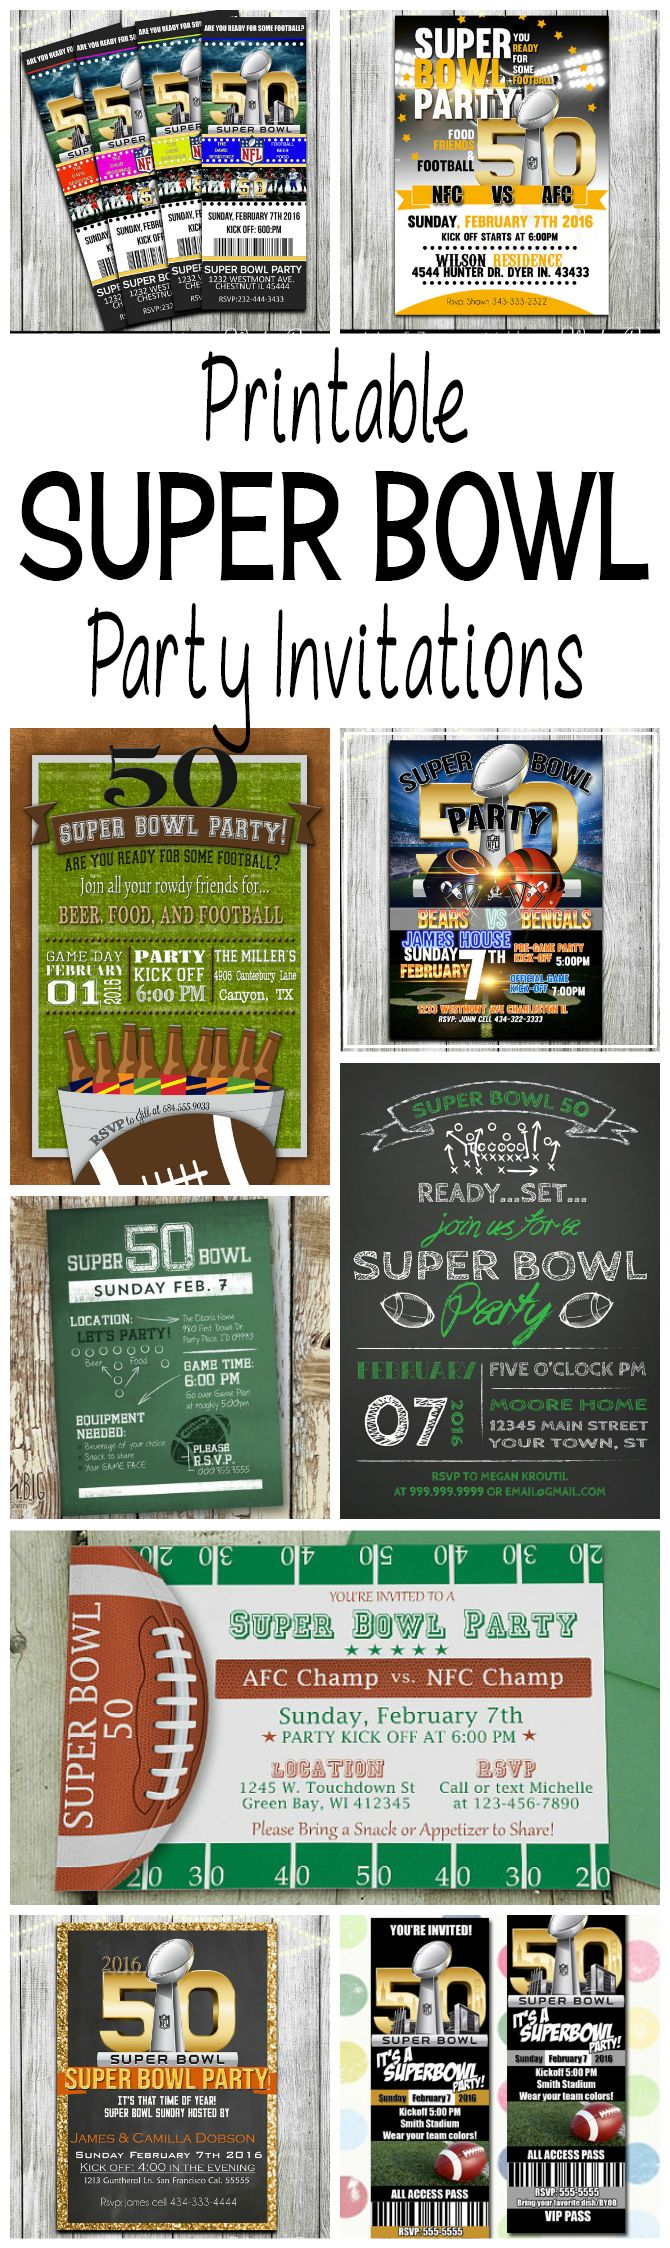 Best 25 Football party invitations ideas – Super Bowl Party Invite